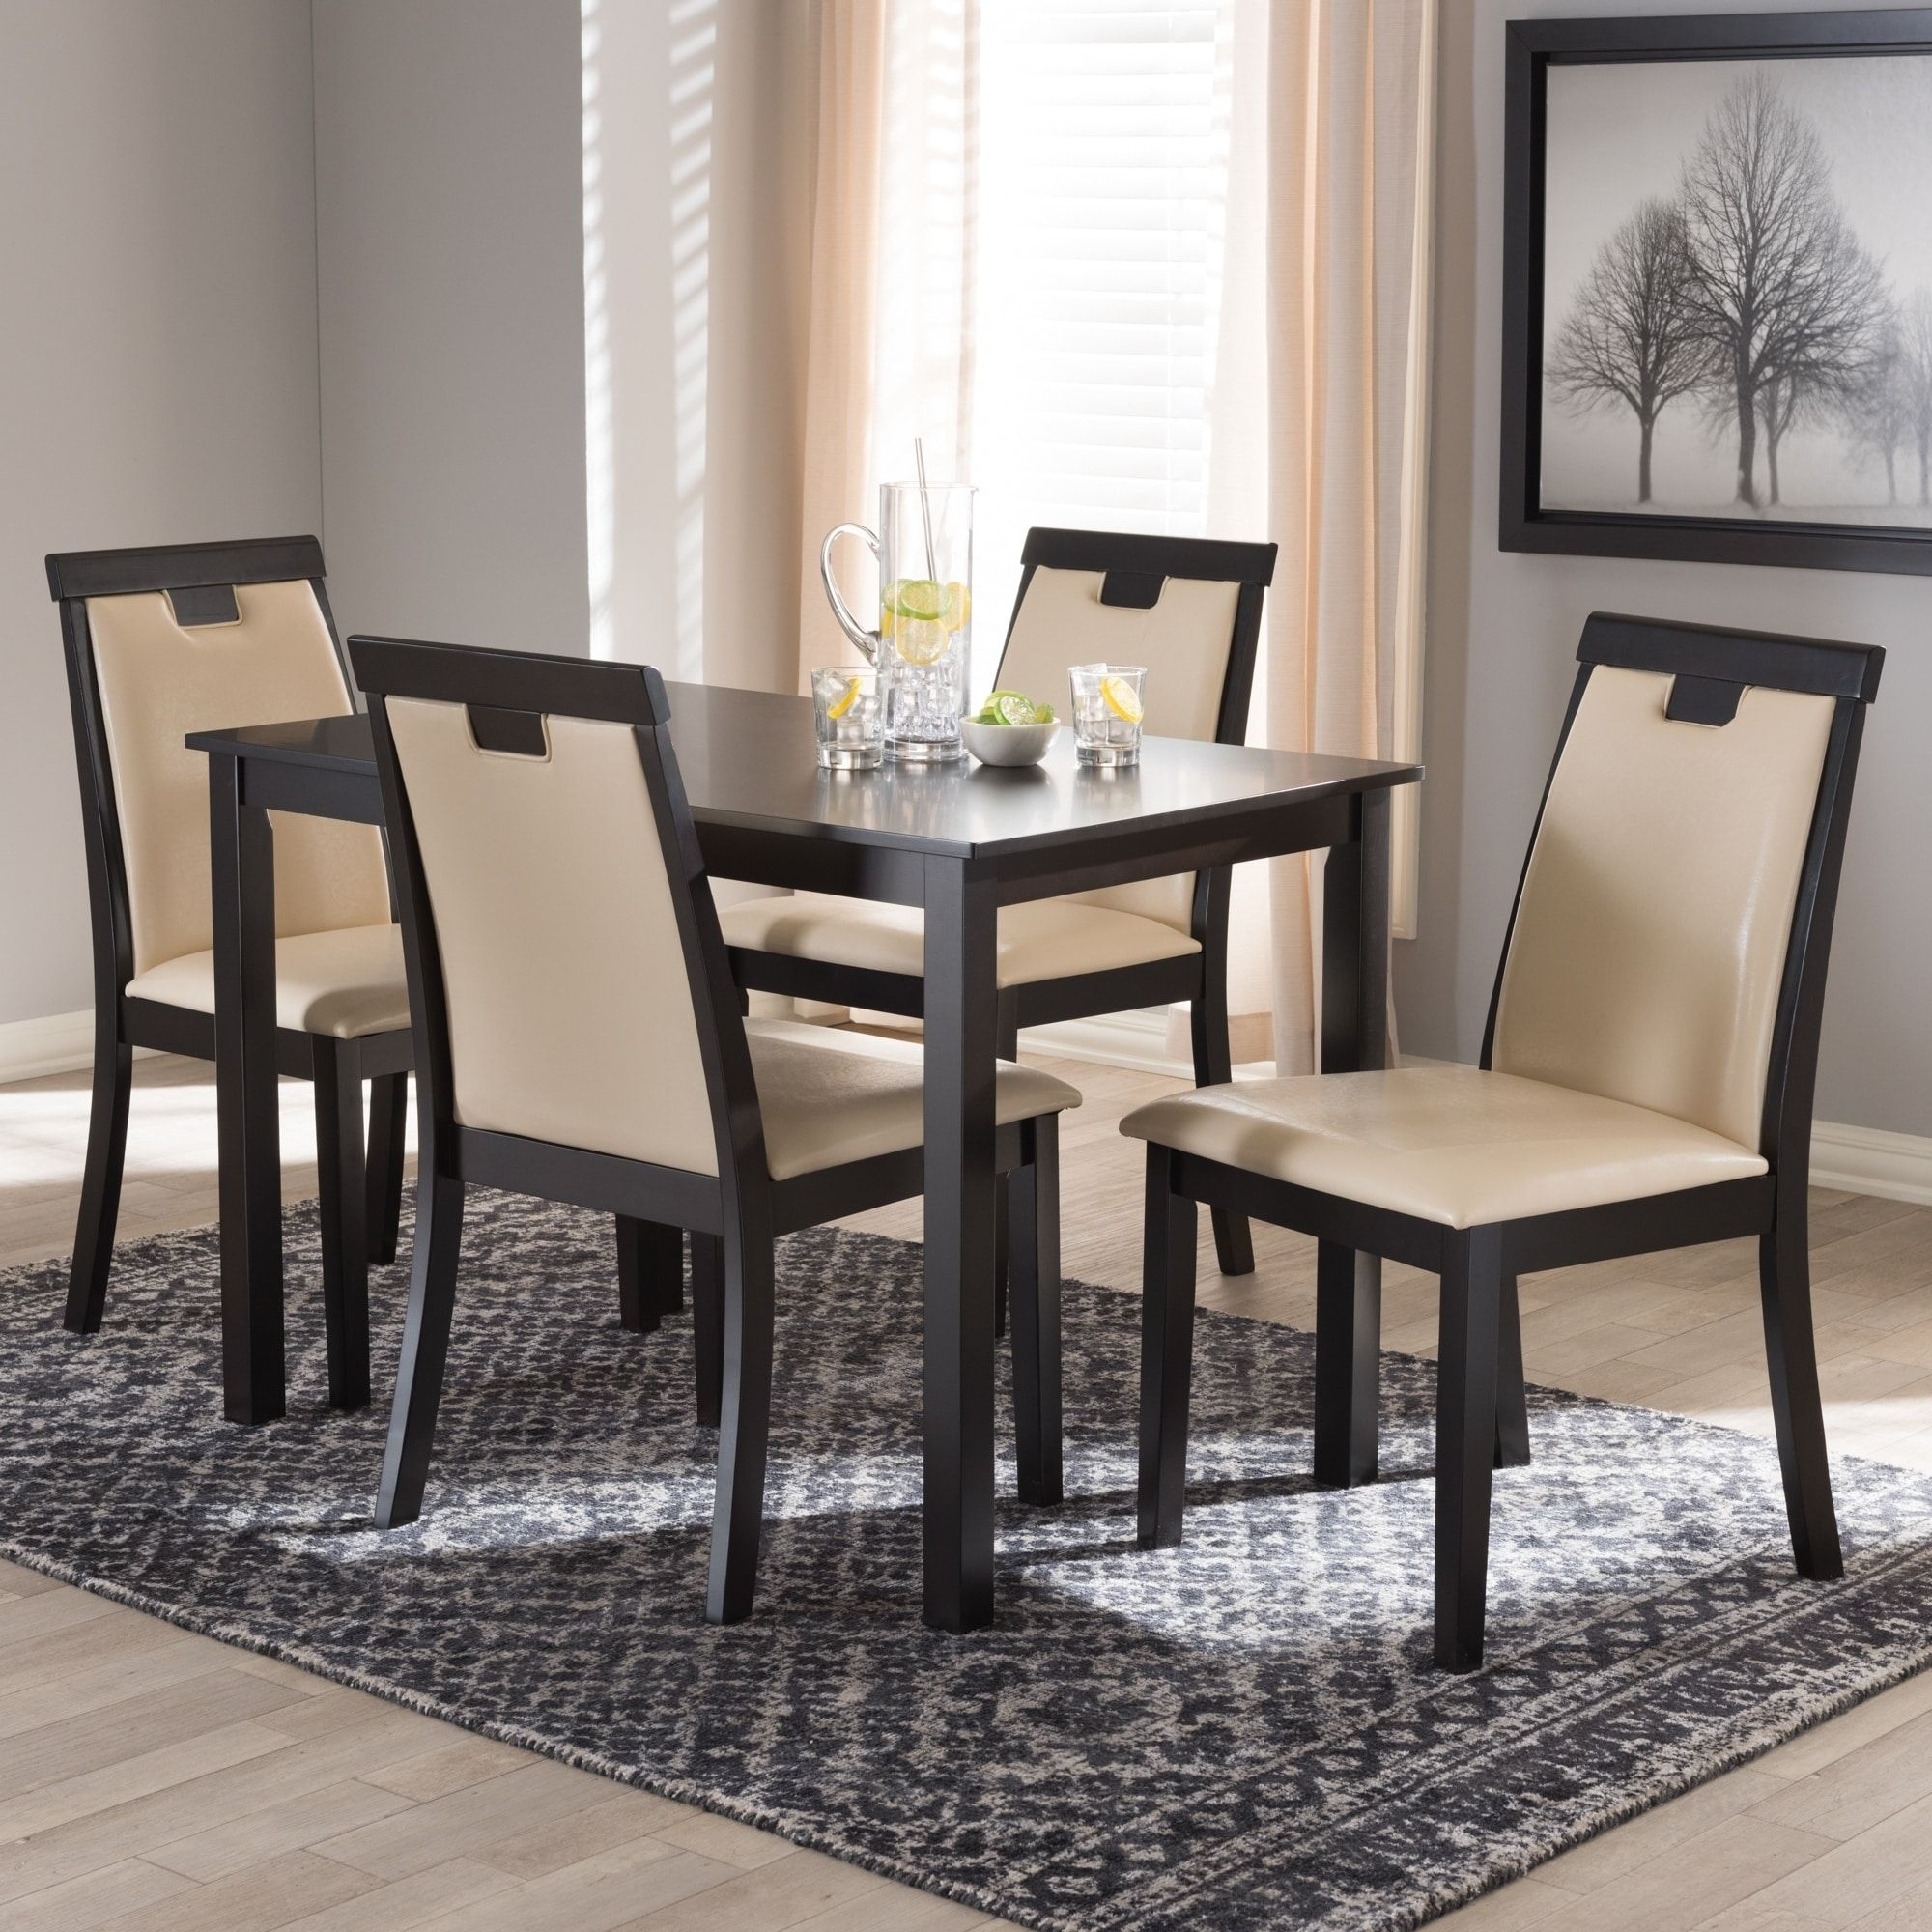 Contemporary Beige Faux Leather 5 Piece Dining Set By Baxton Studio, Size 5